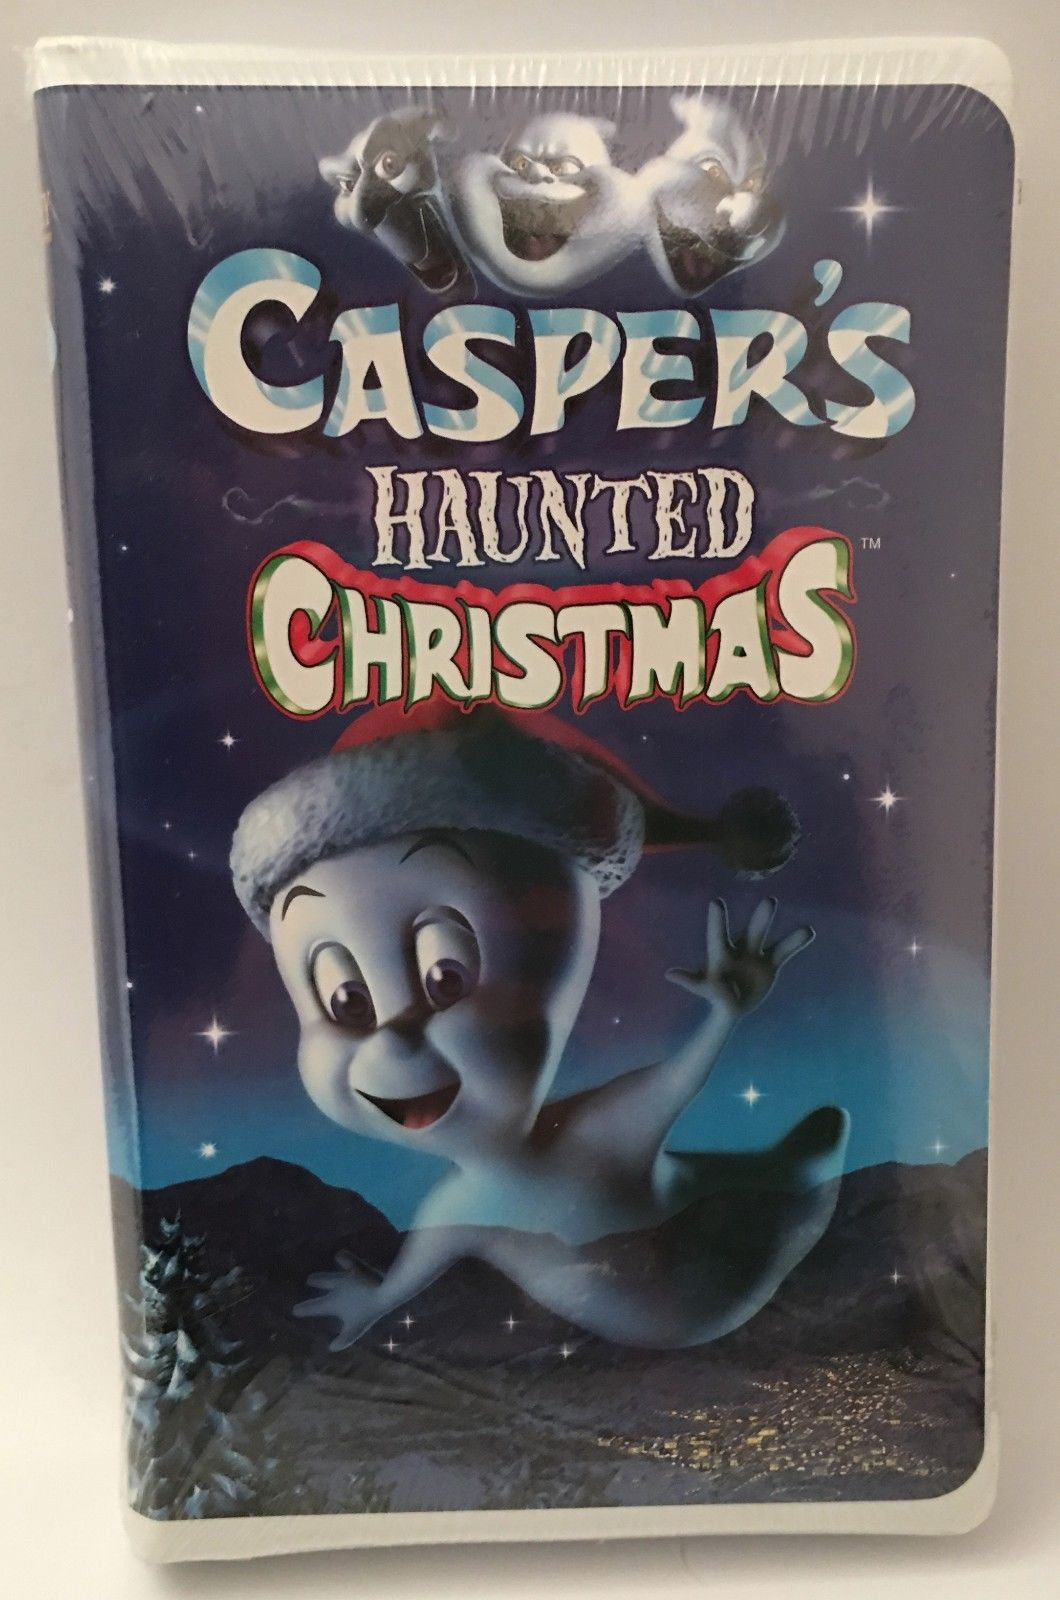 How The Grinch Stole Christmas 2000 Vhs.Opening To Casper S Haunted Christmas 2000 Vhs From The